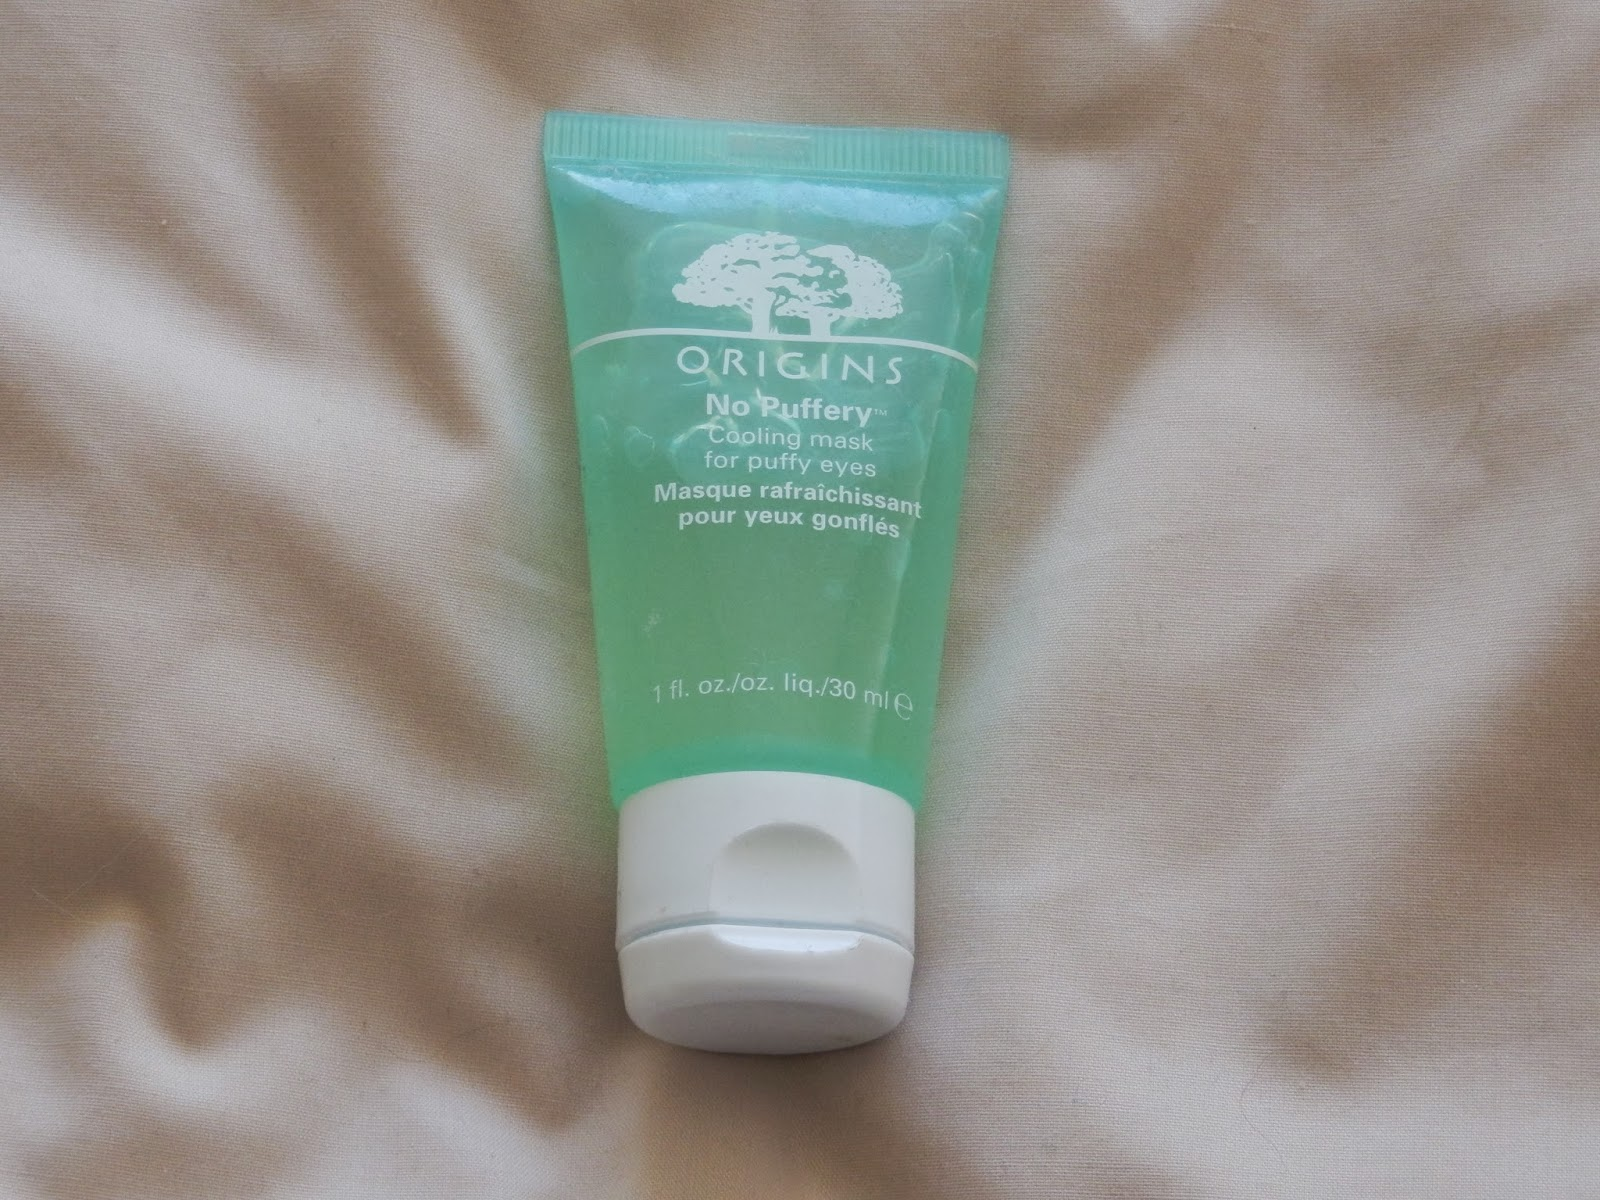 Origins No Puffery cooling mask for puffy eyes